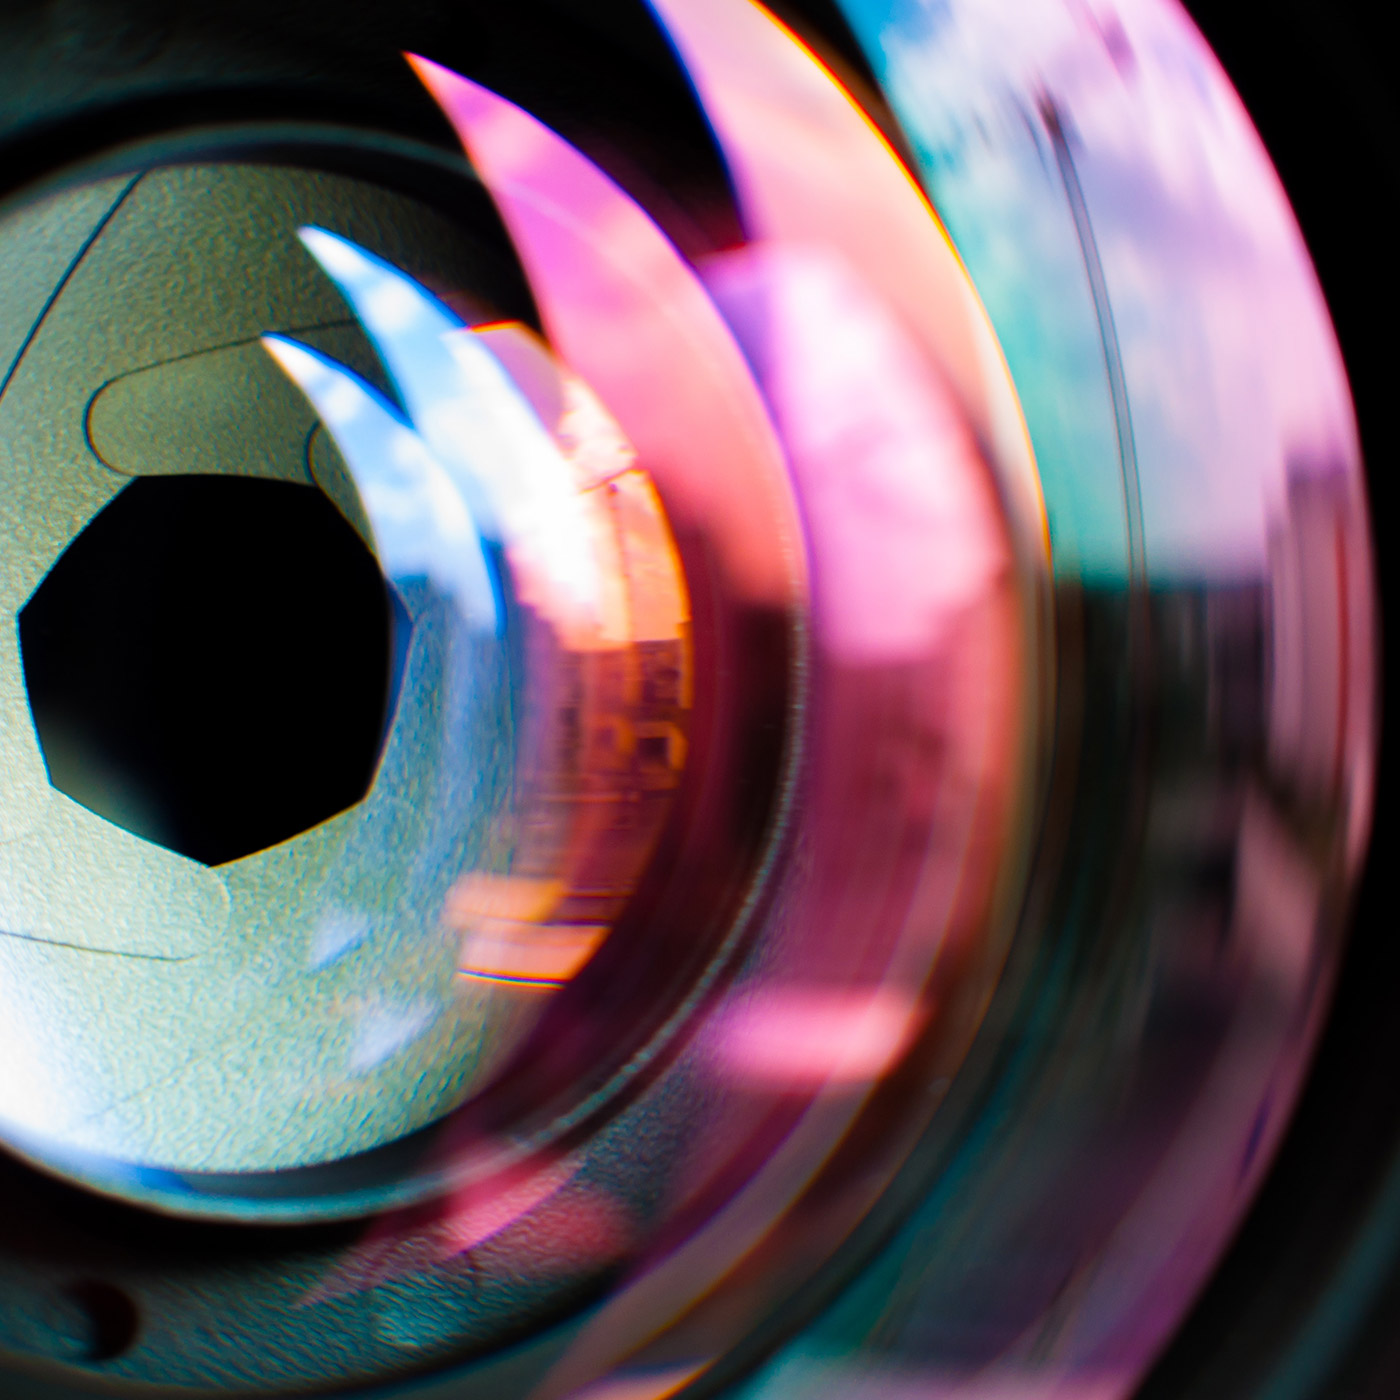 A close up of a camera shutter lens with rainbow reflection.